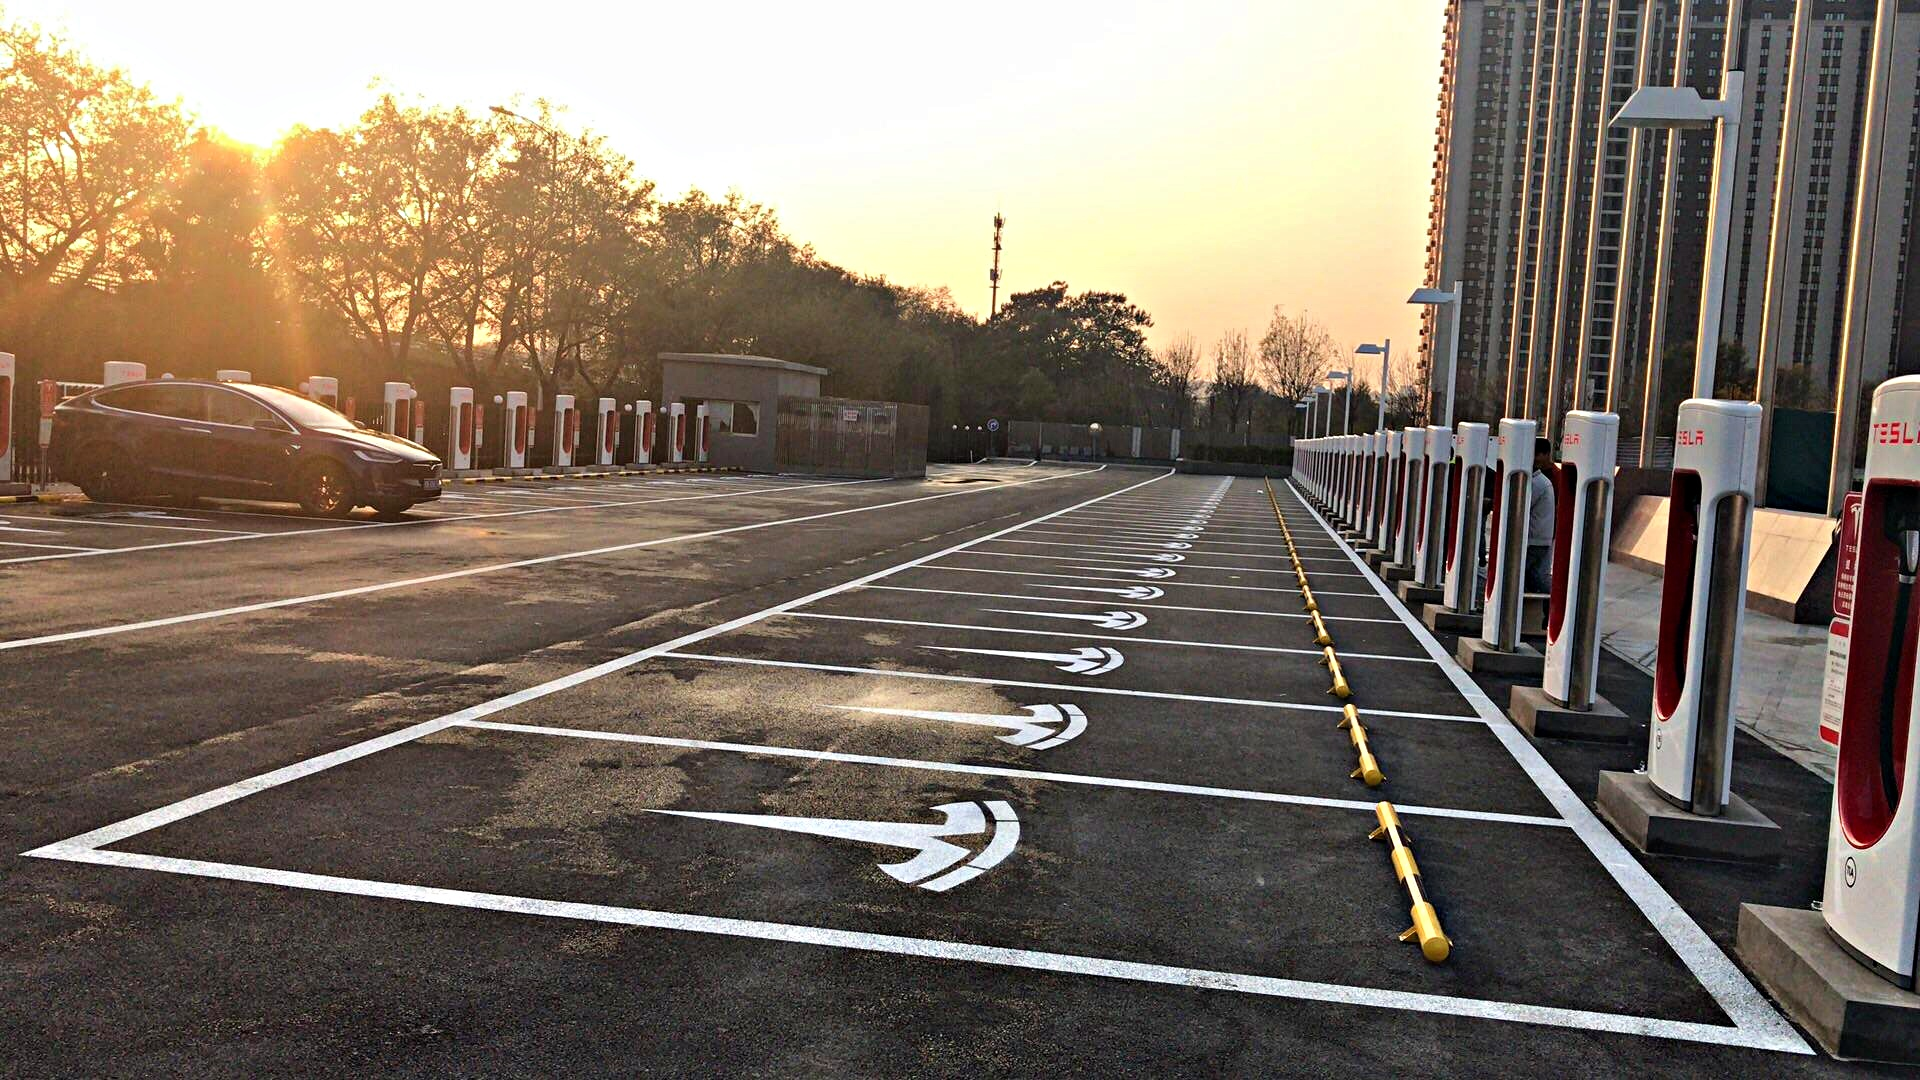 tesla-baolong-mansion-supercharger-beijing-china-50-stalls